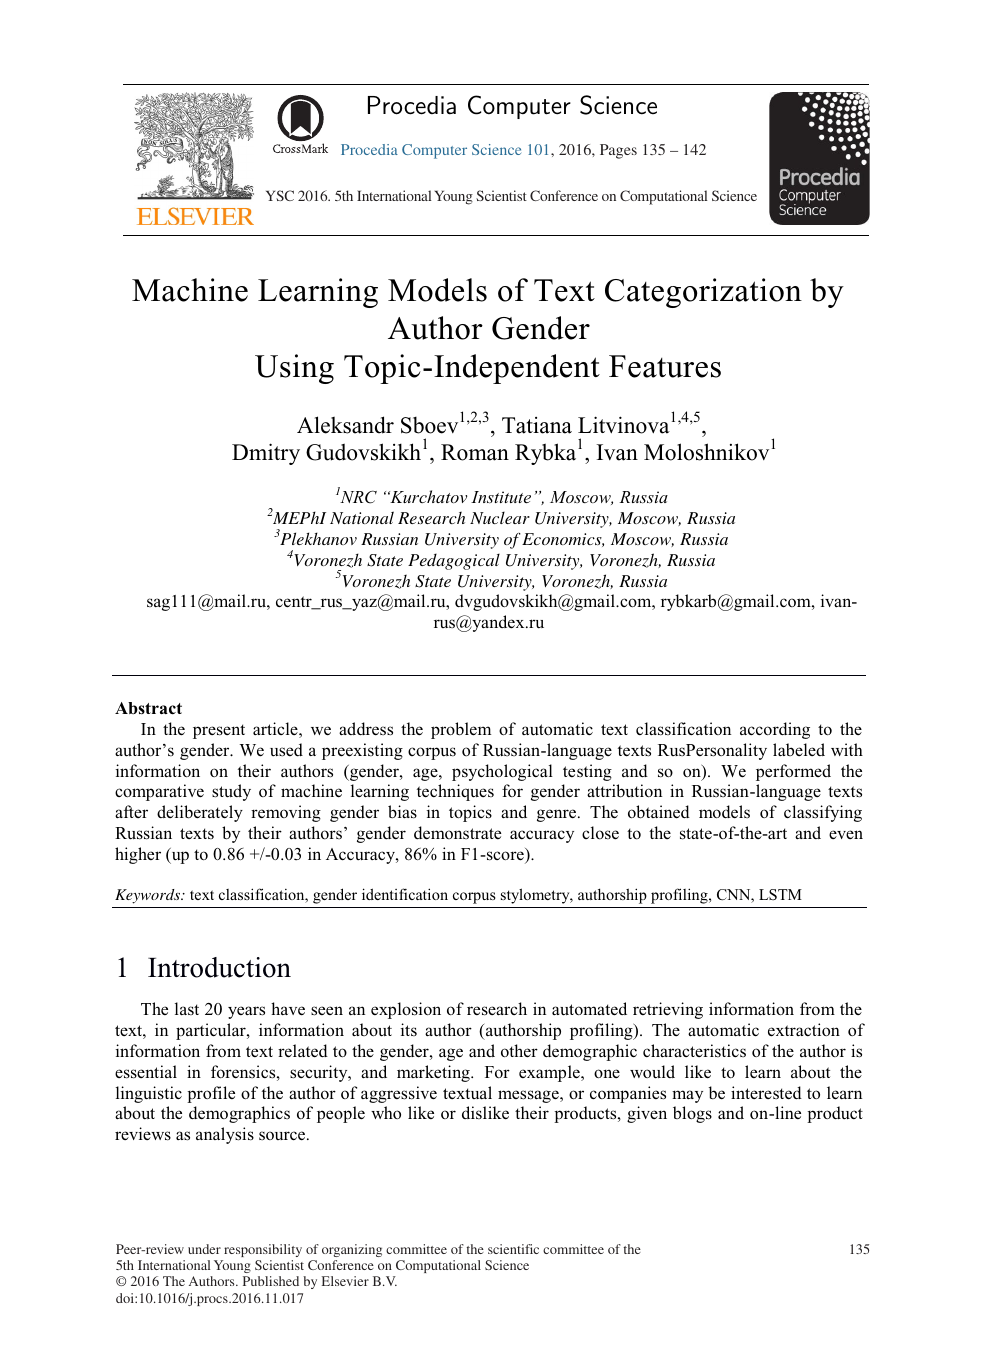 Machine Learning Models of Text Categorization by Author Gender